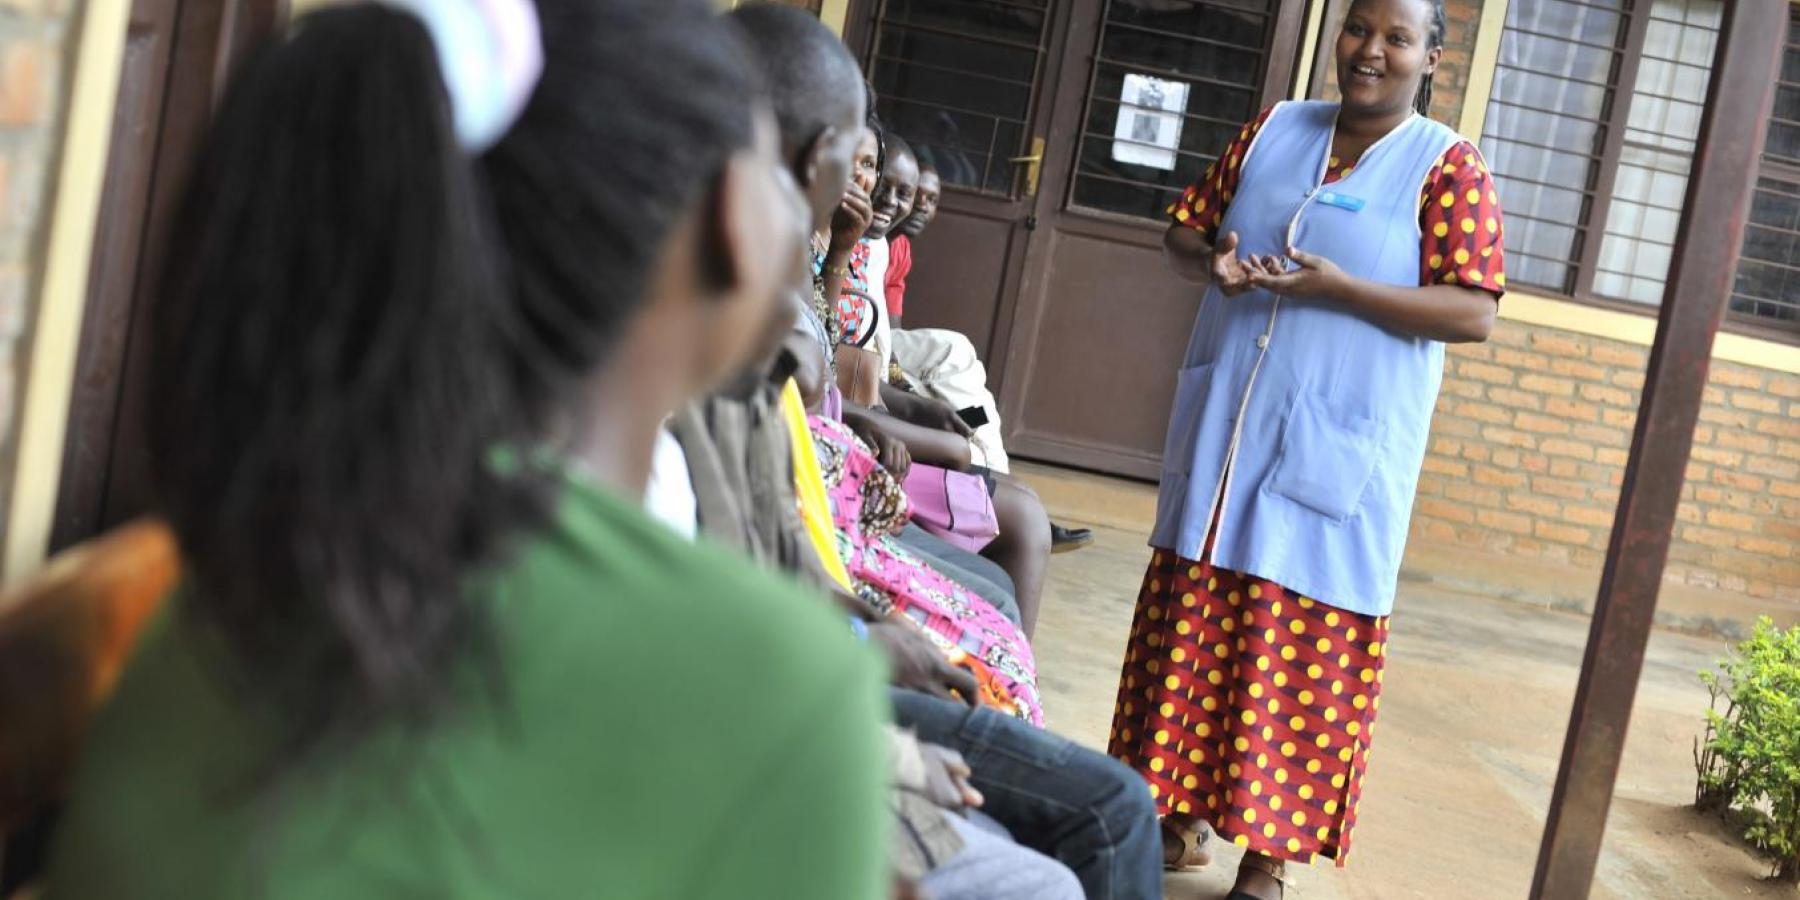 A health worker speaks to clients waiting for services at a clinic in Rwanda.